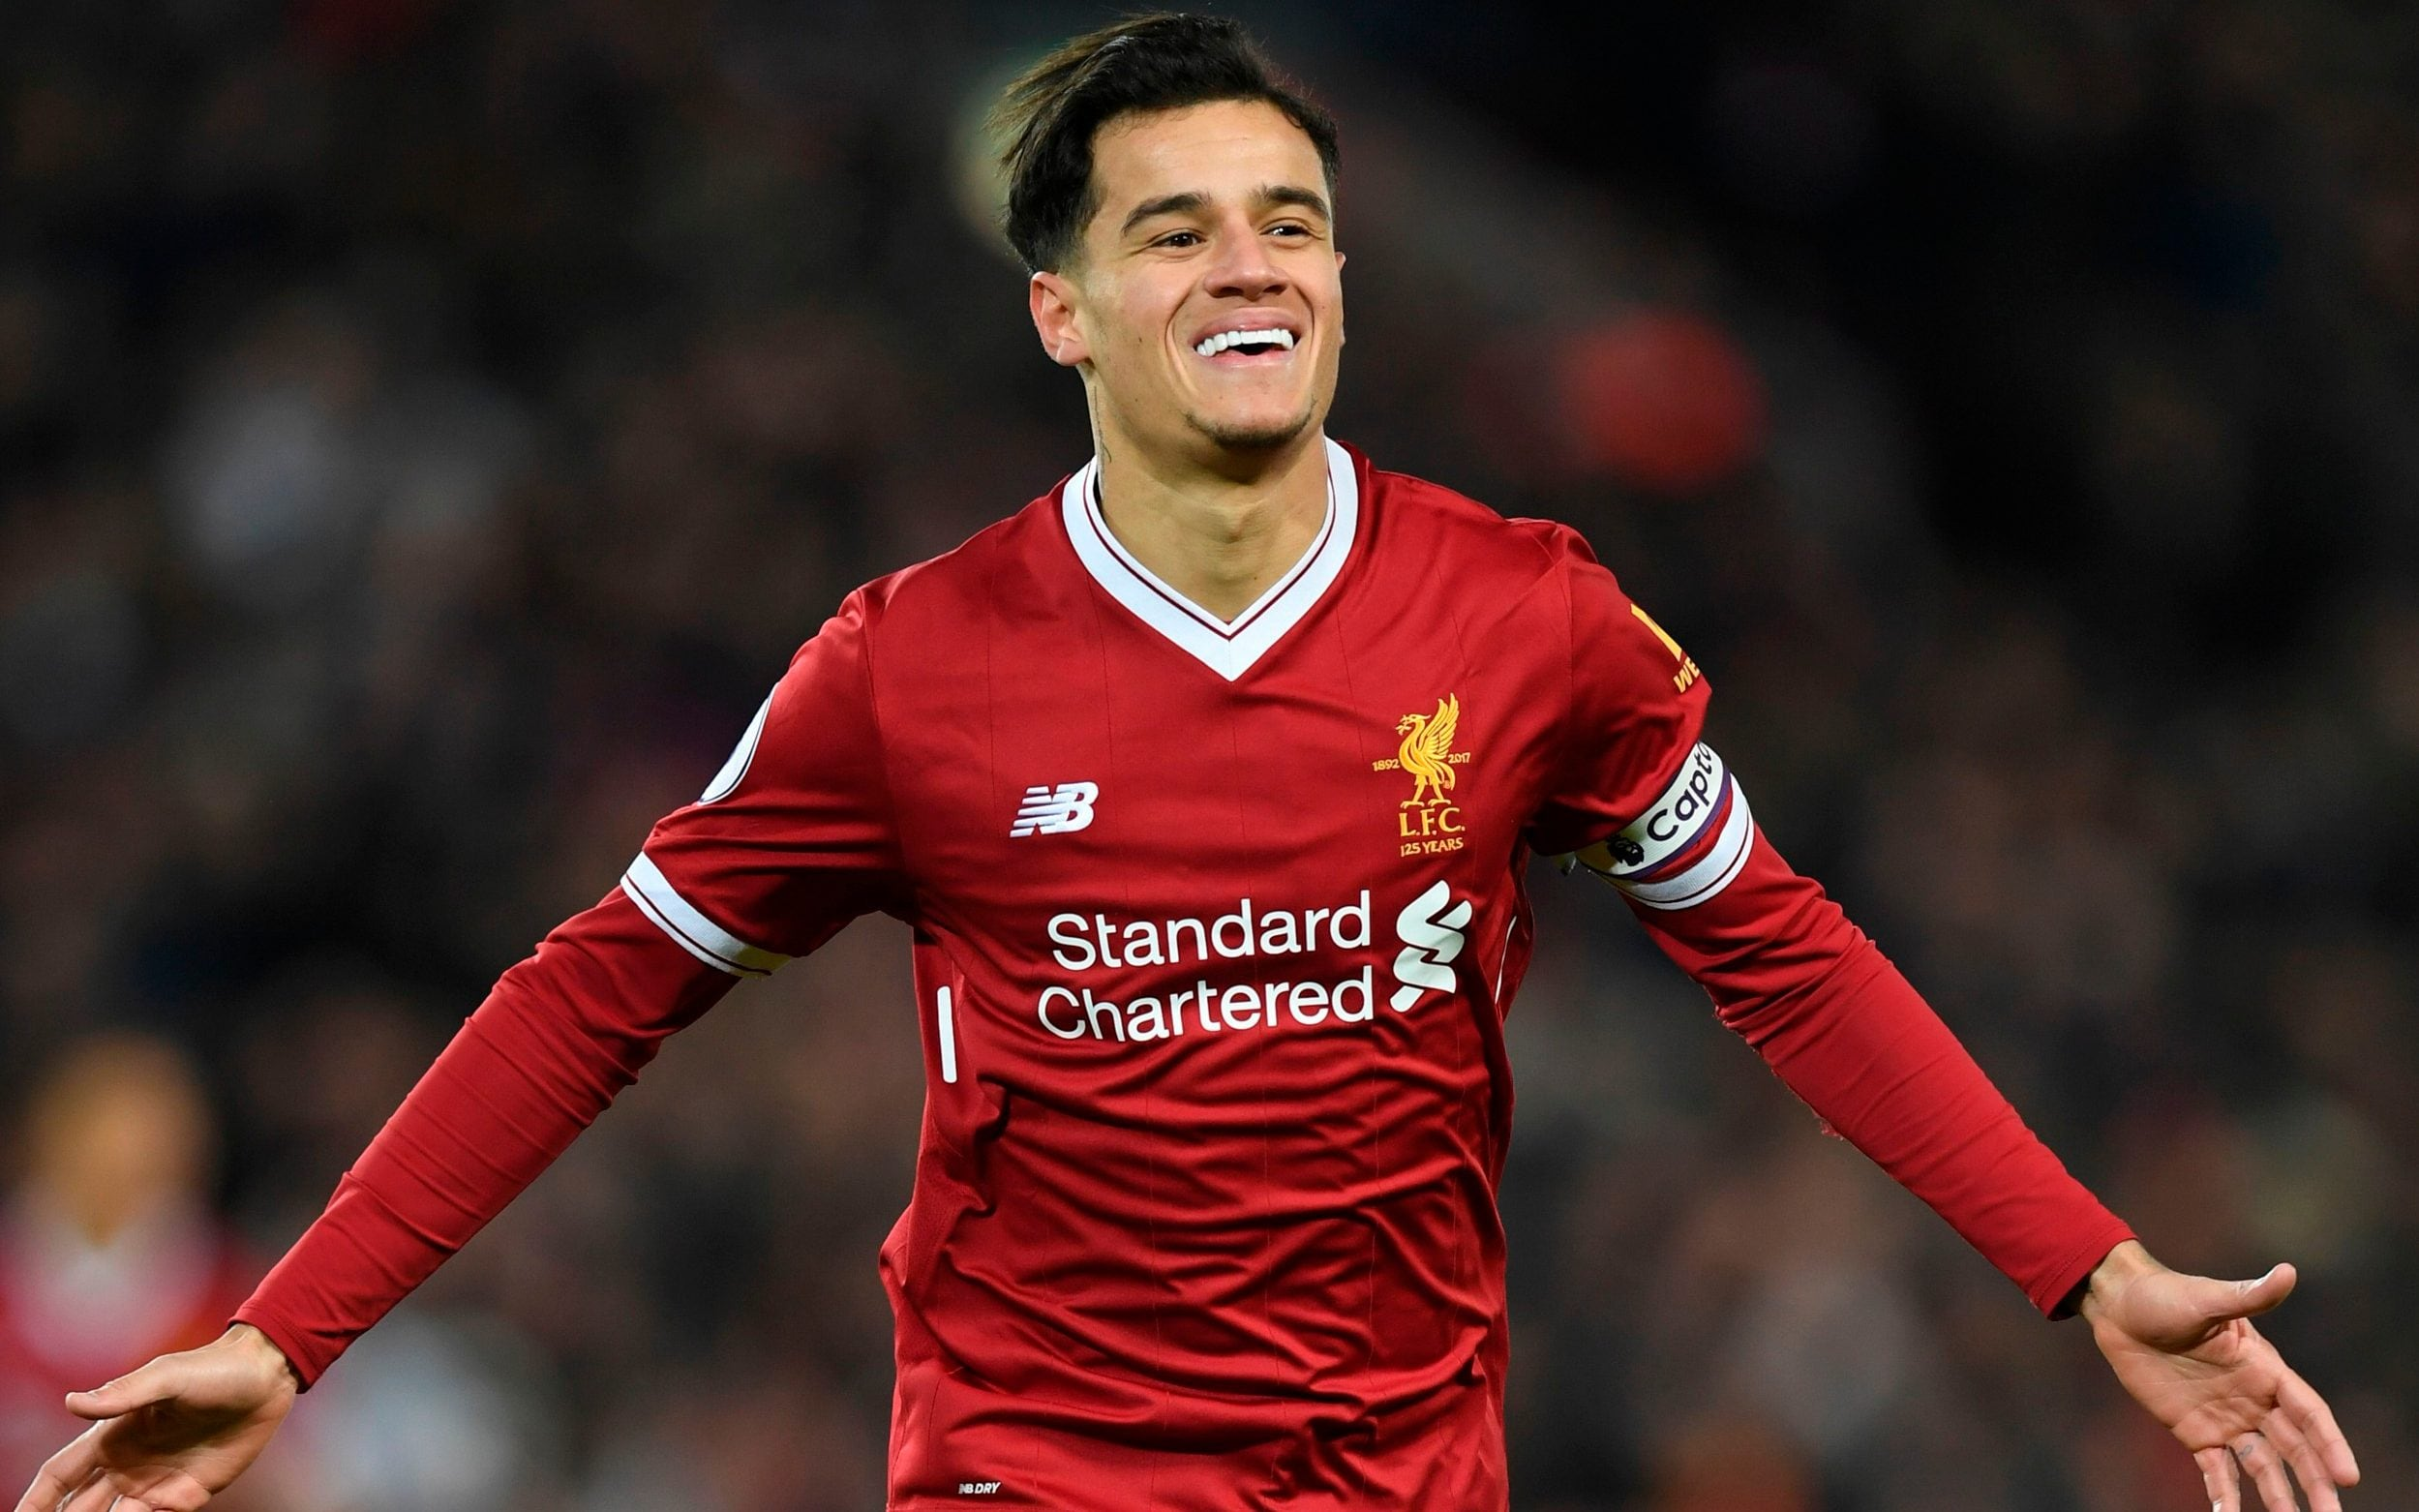 Liverpool fear missing out on €20m due to Philippe Coutinho injury - Football Espana